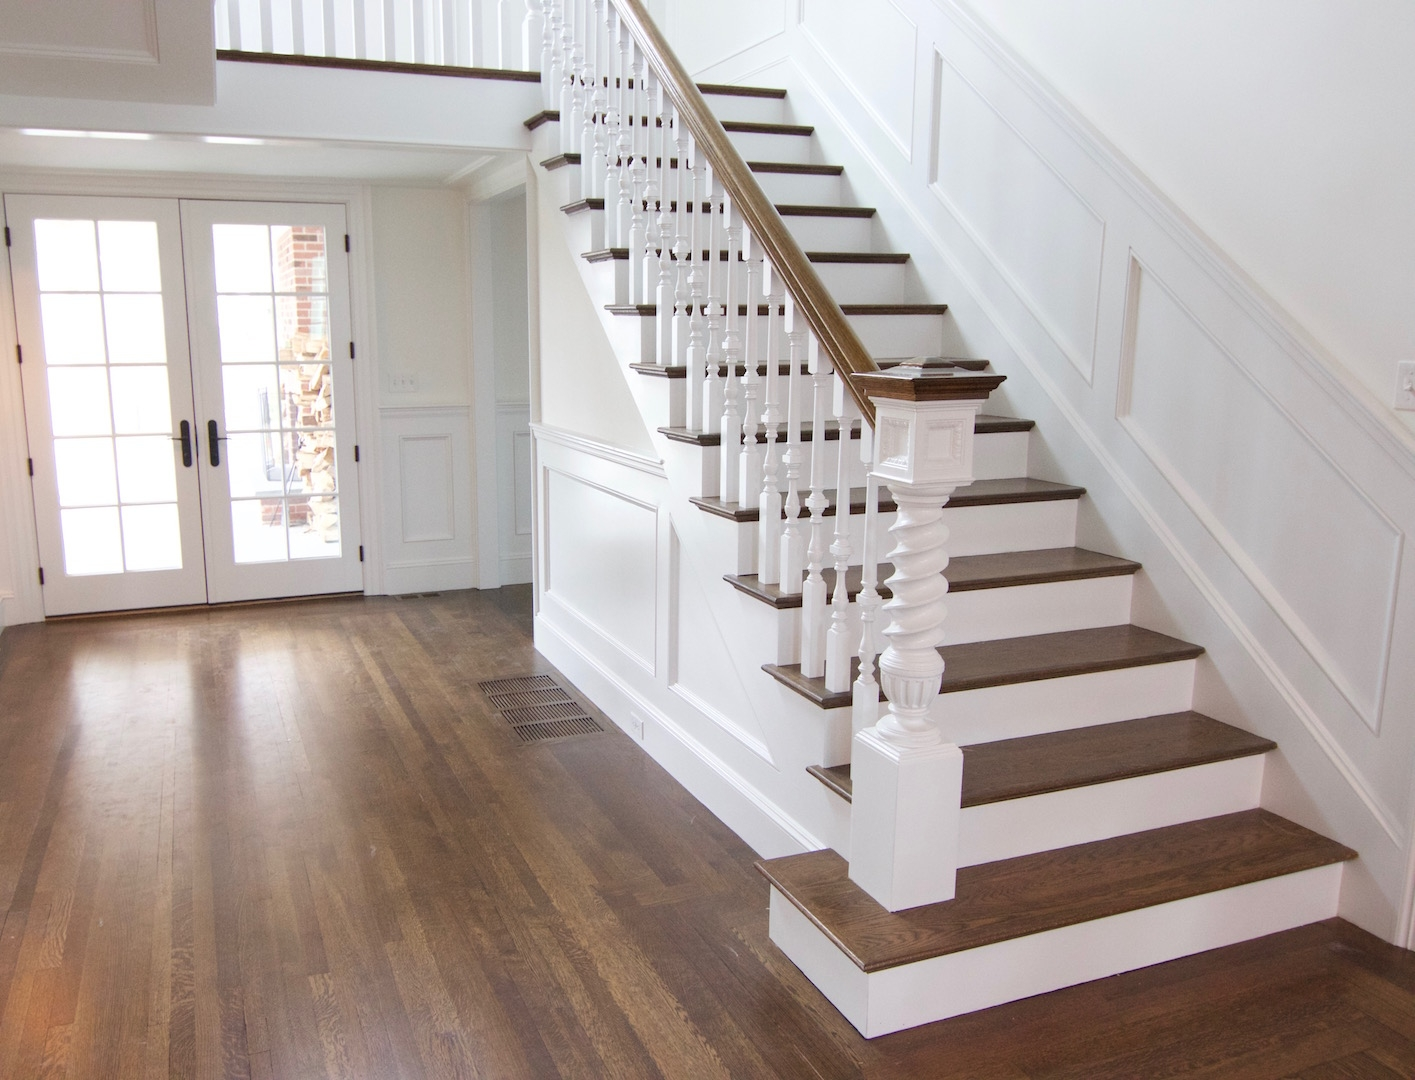 Hardwood Stairs Gandswoodfloors   White Stairs With Wood Steps   Light Wood   White Riser   Outdoor   Dark   Traditional